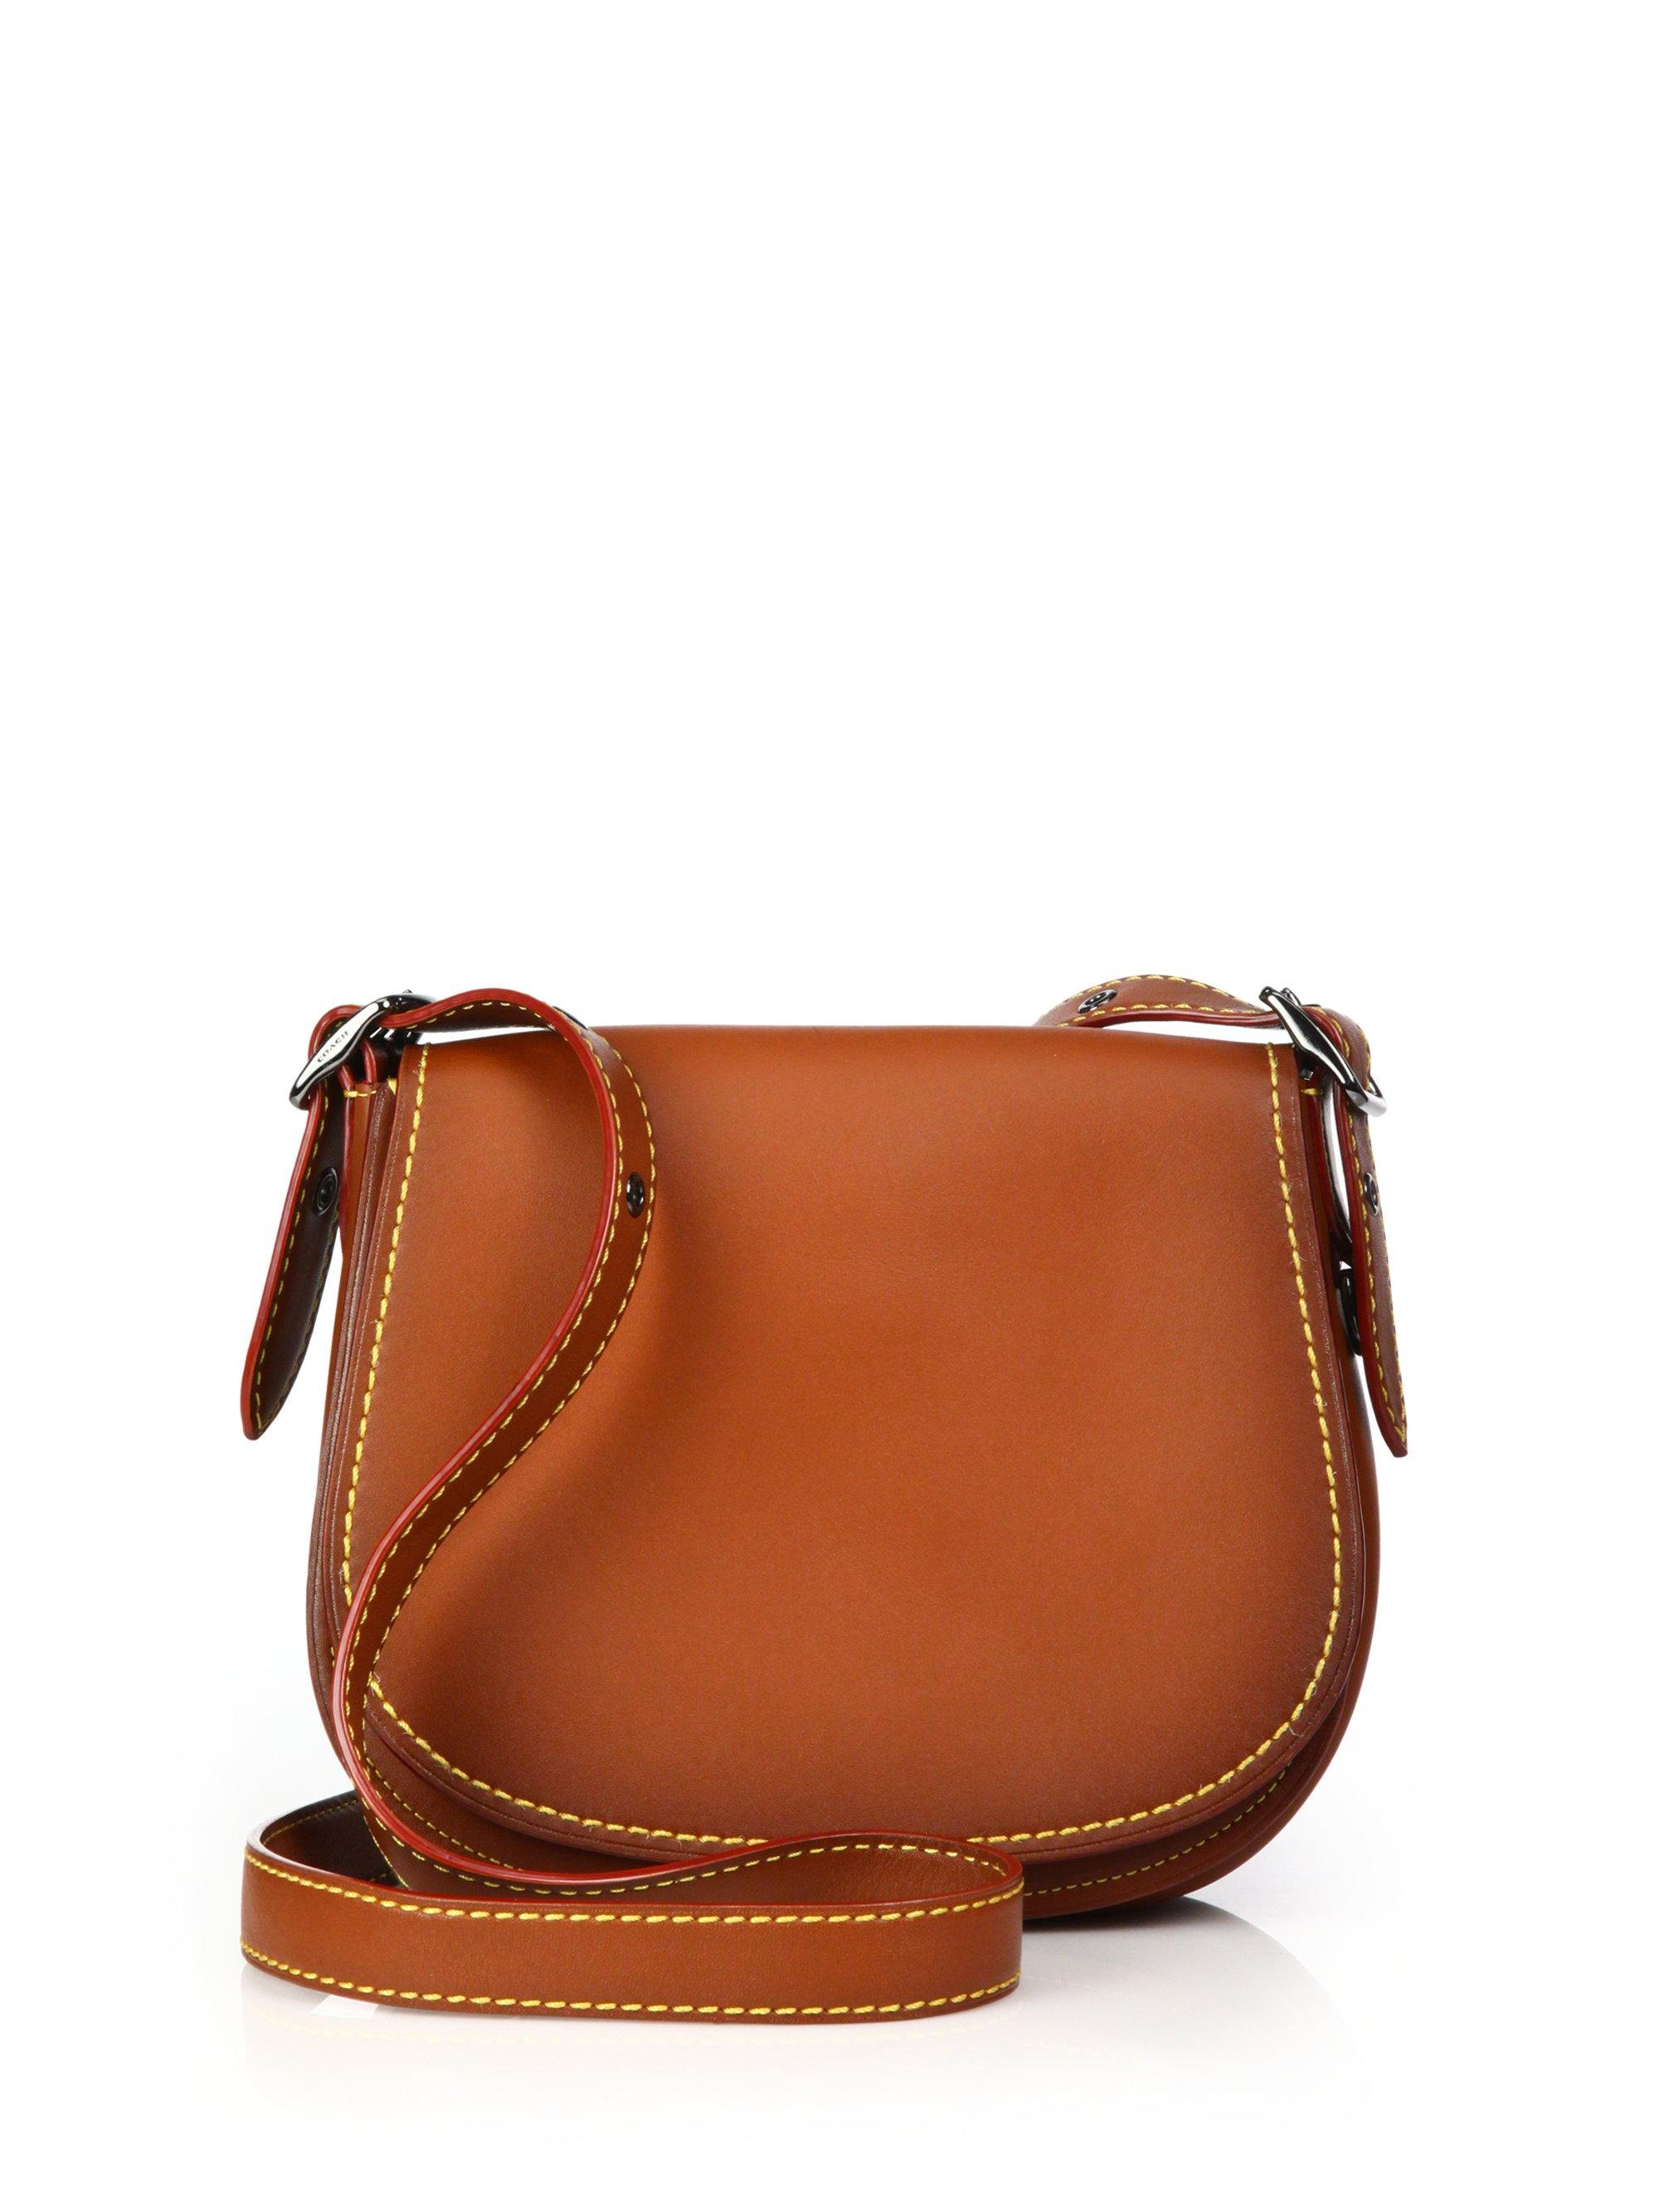 COACH Leather Saddle Bag in Brown - Lyst